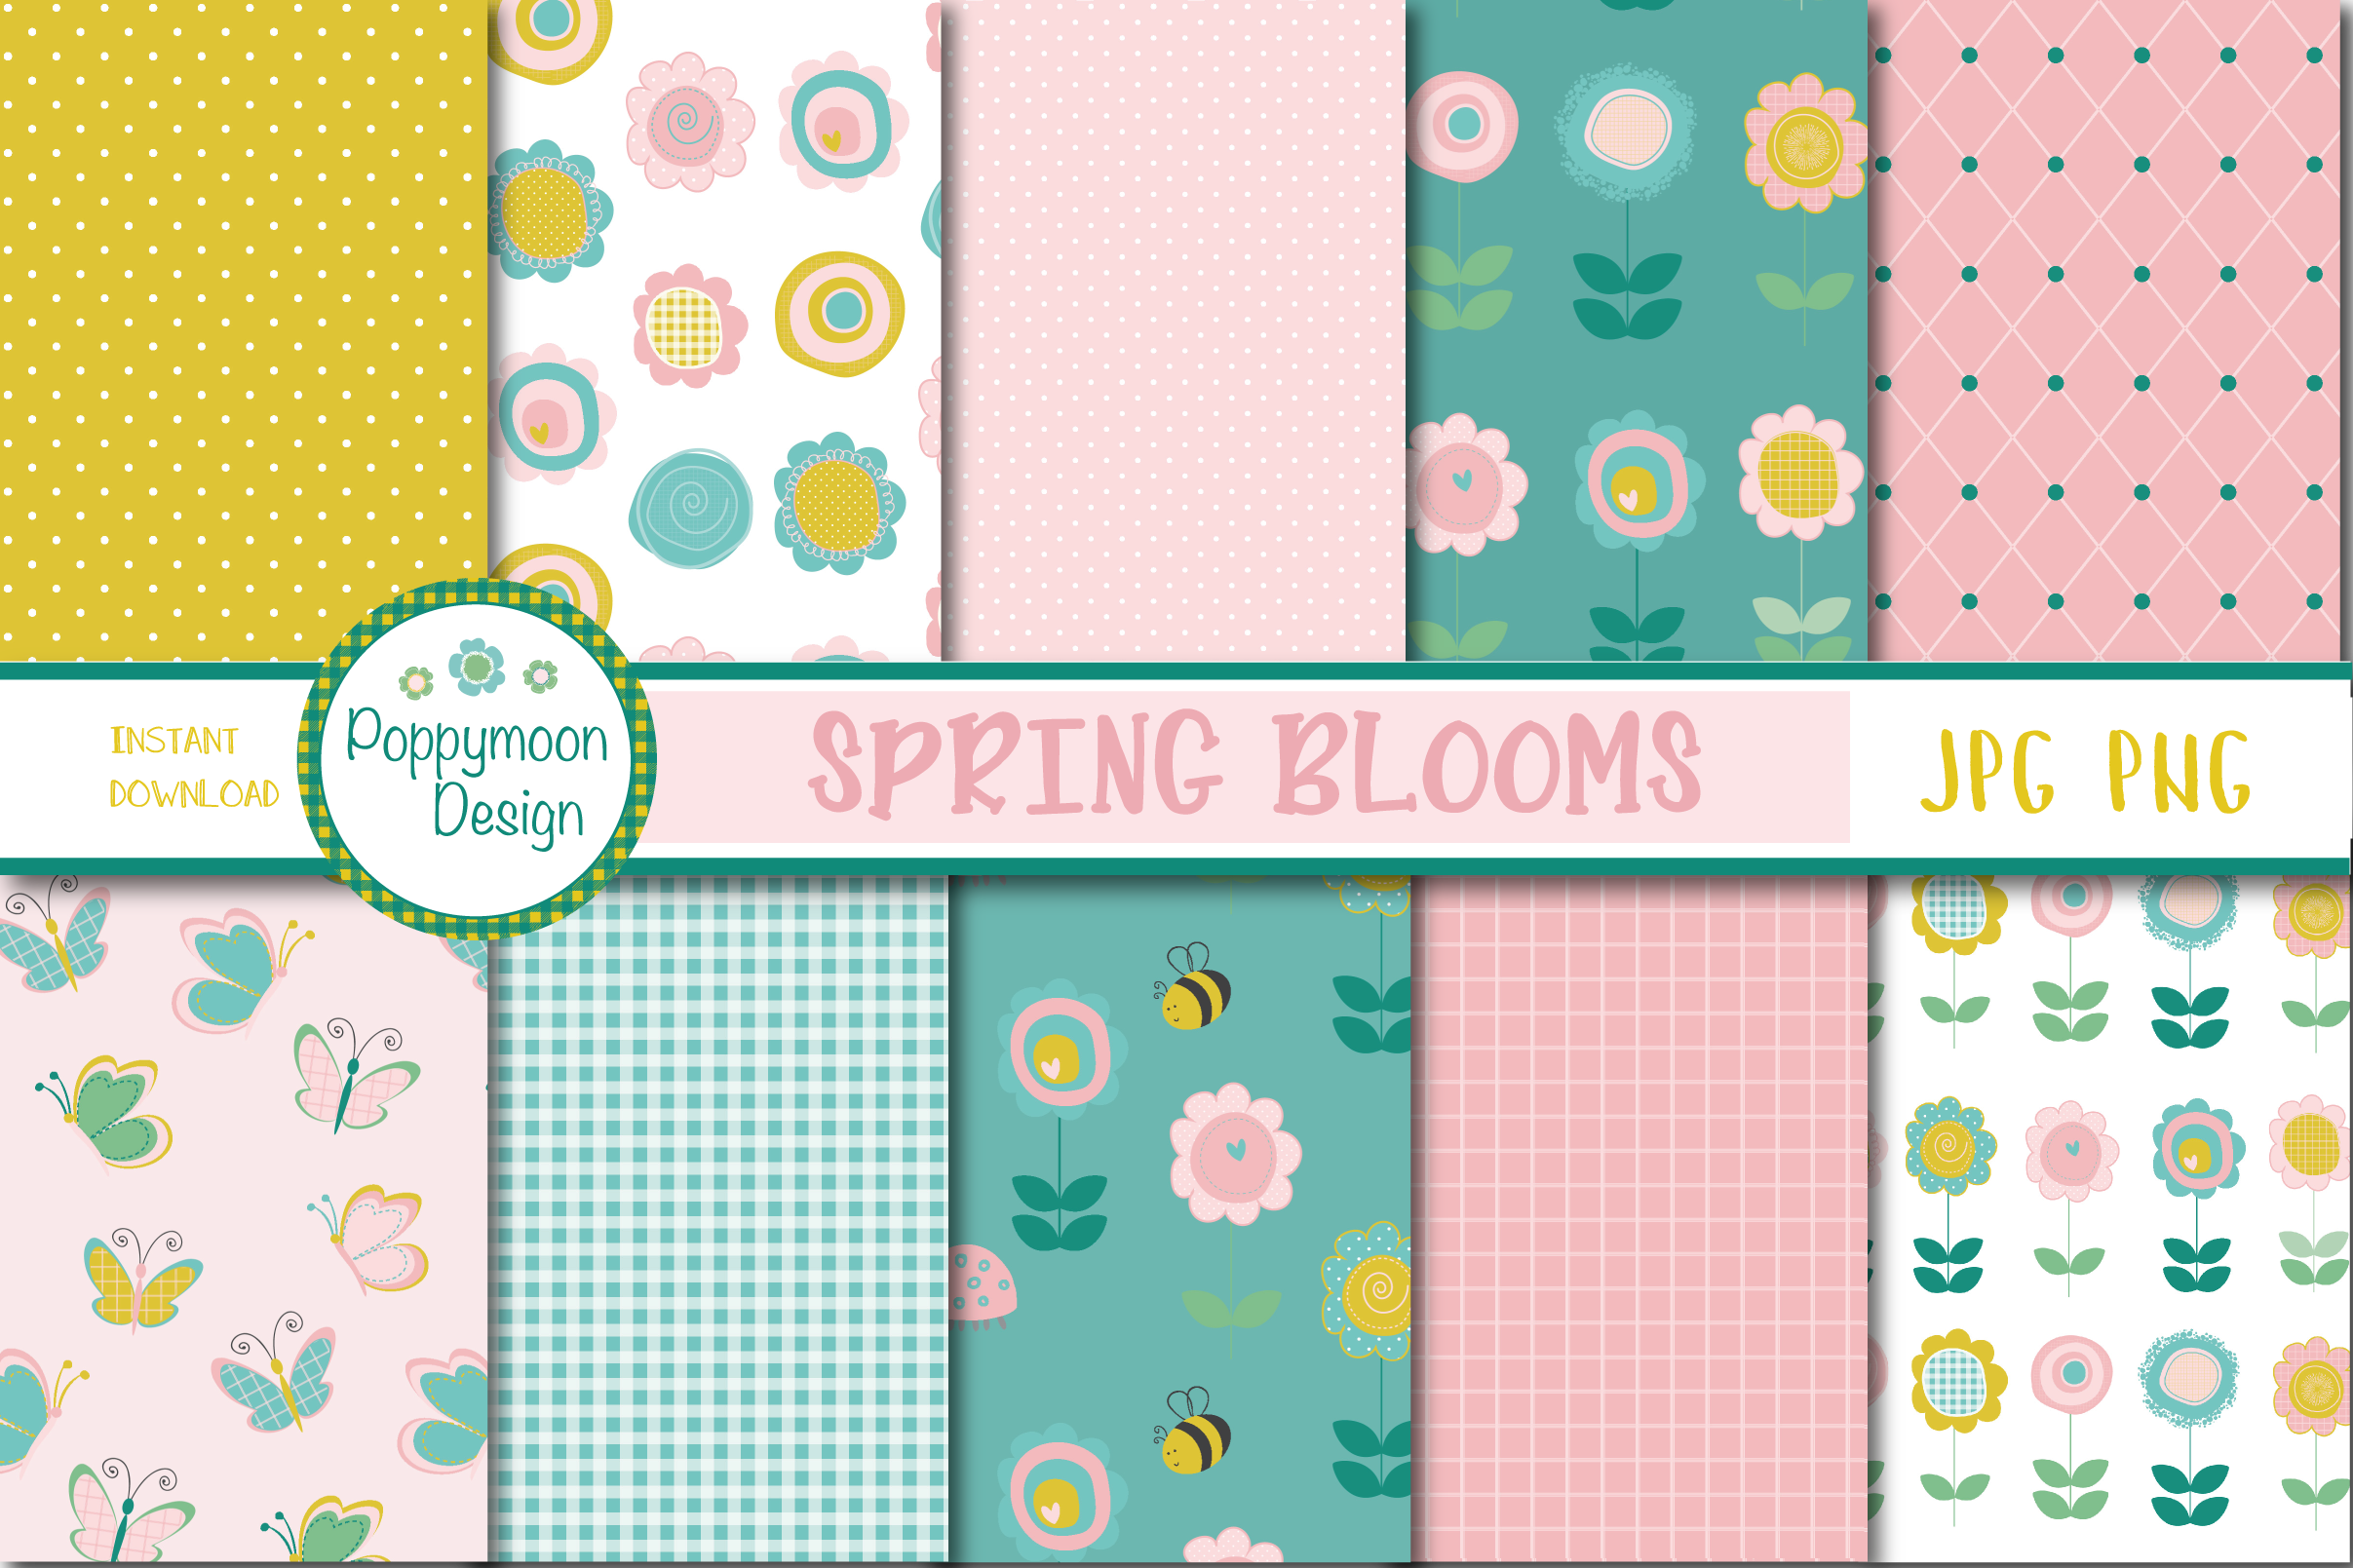 Download Free Spring Blooms Paper Graphic By Poppymoondesign Creative Fabrica for Cricut Explore, Silhouette and other cutting machines.